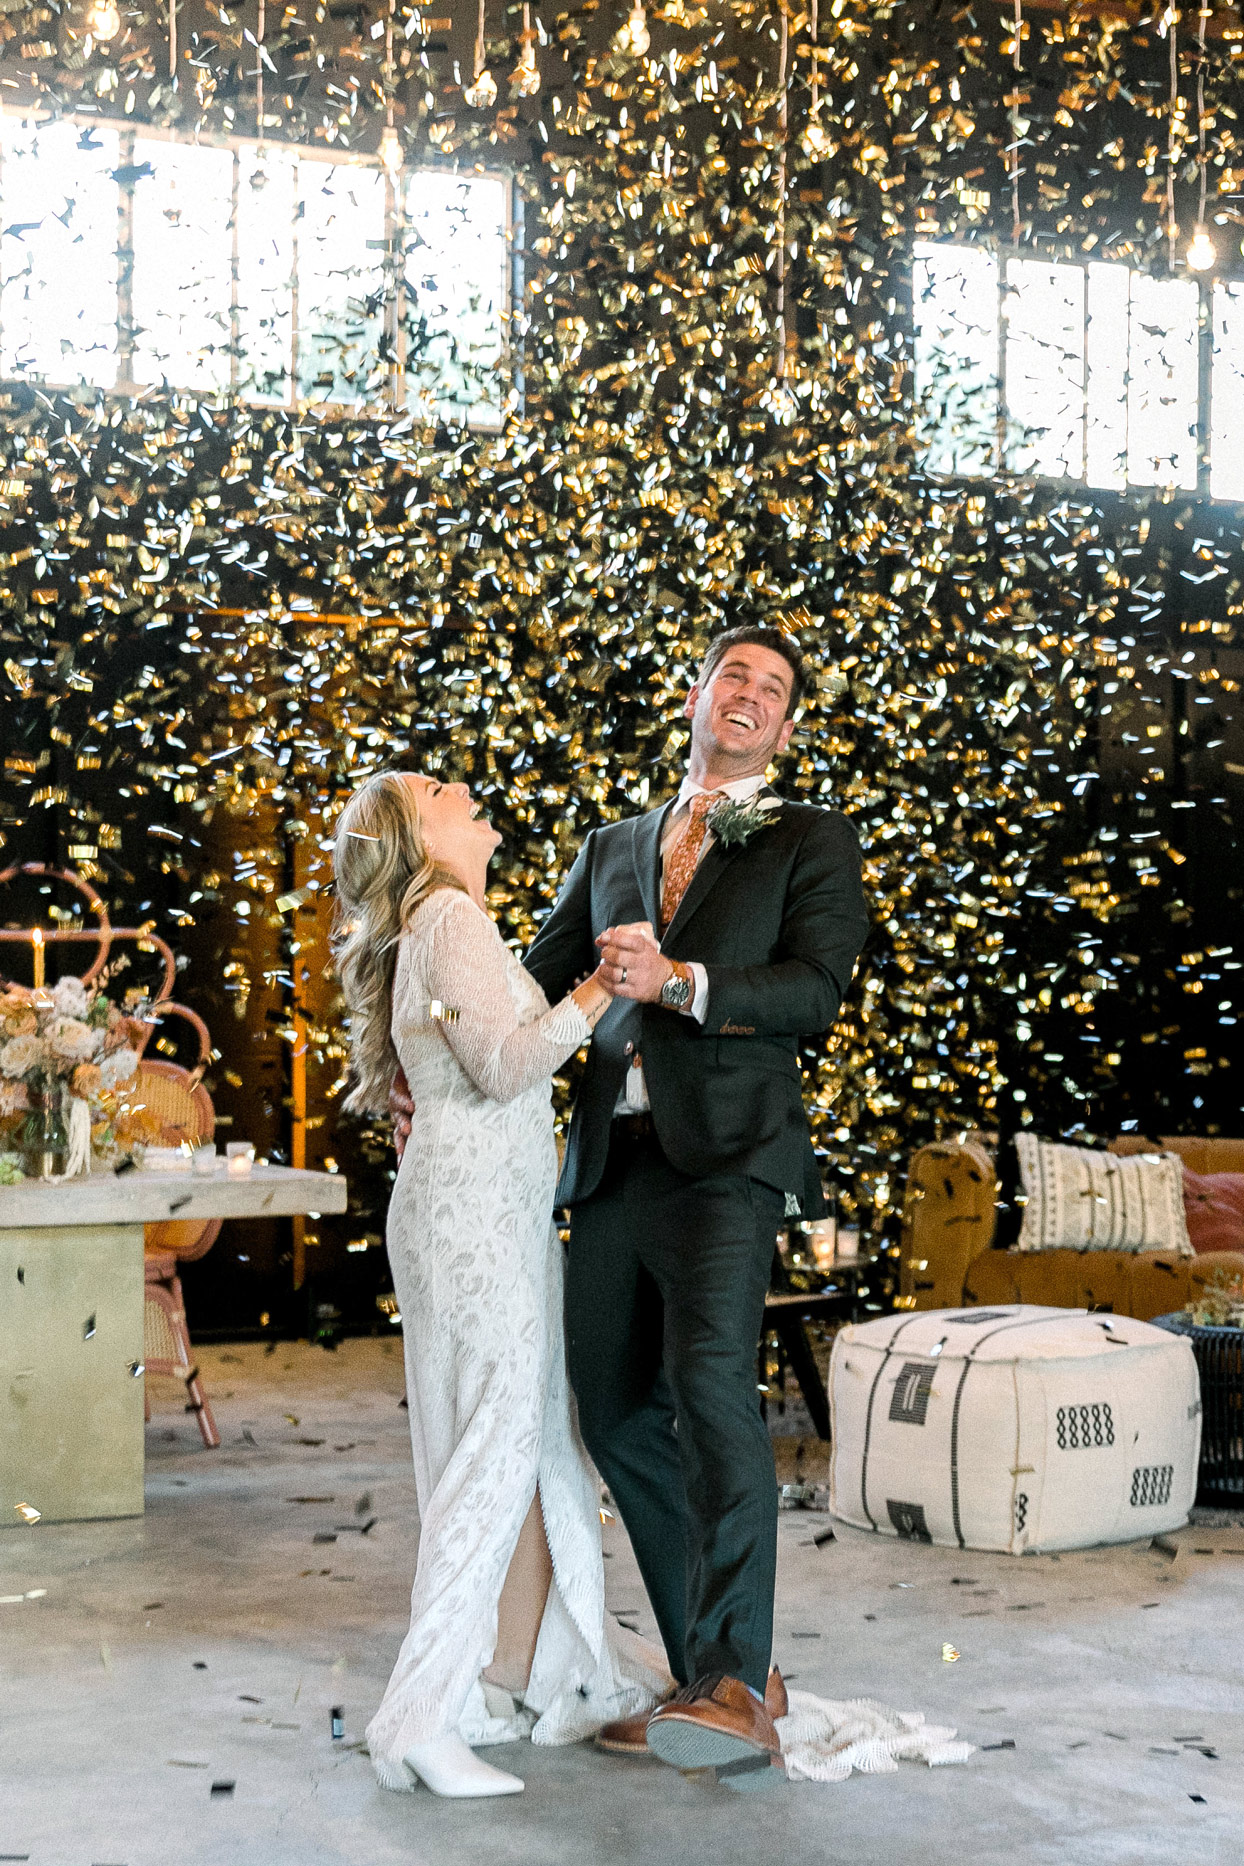 bride and groom sharing first dance beneath gold confetti